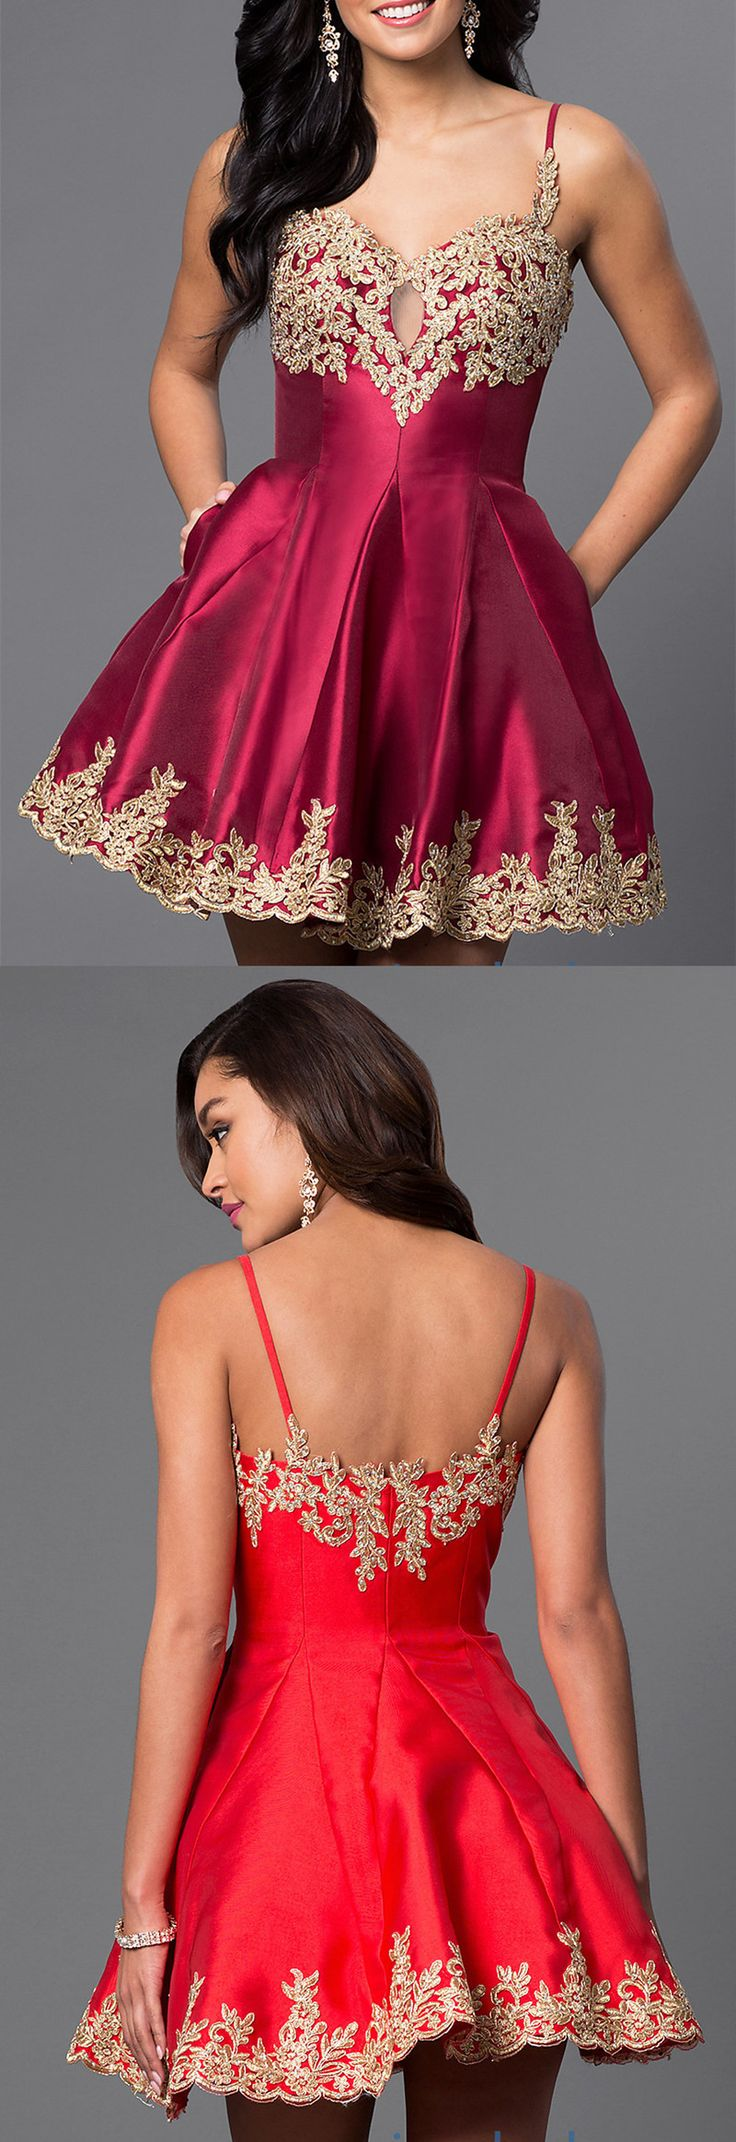 Gold Applique Homecoming Dresses with Pocket Short A line Prom Gowns